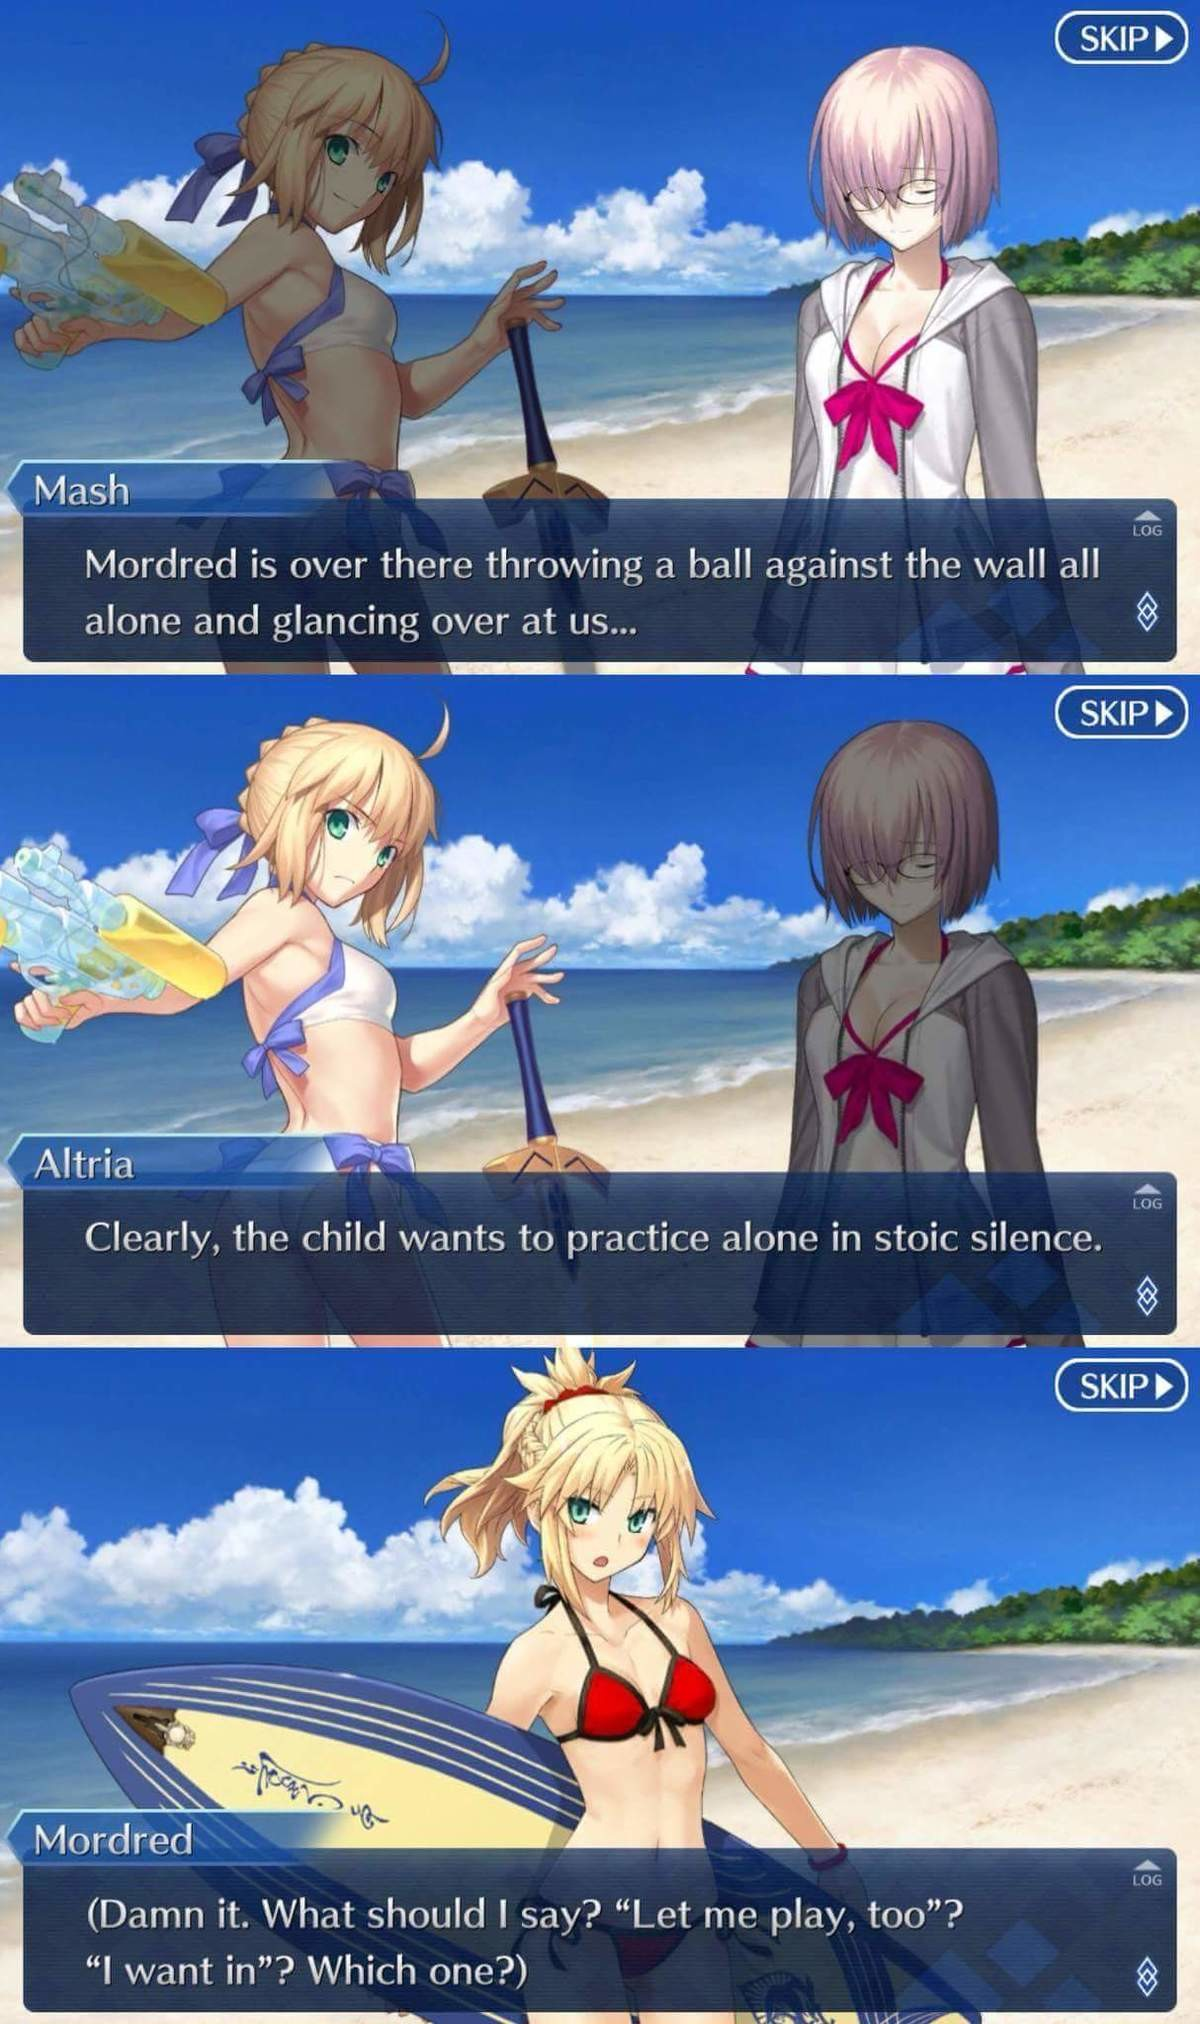 """Even On Vacation Artoria Is a Bulli. join list: Lewds4DHeart (1587 subs)Mention History join list:. Mordred could seriously be a poster child for child abuse. Her mother brings her to Camelot, and drops her there with so much as a """"There's your father the"""